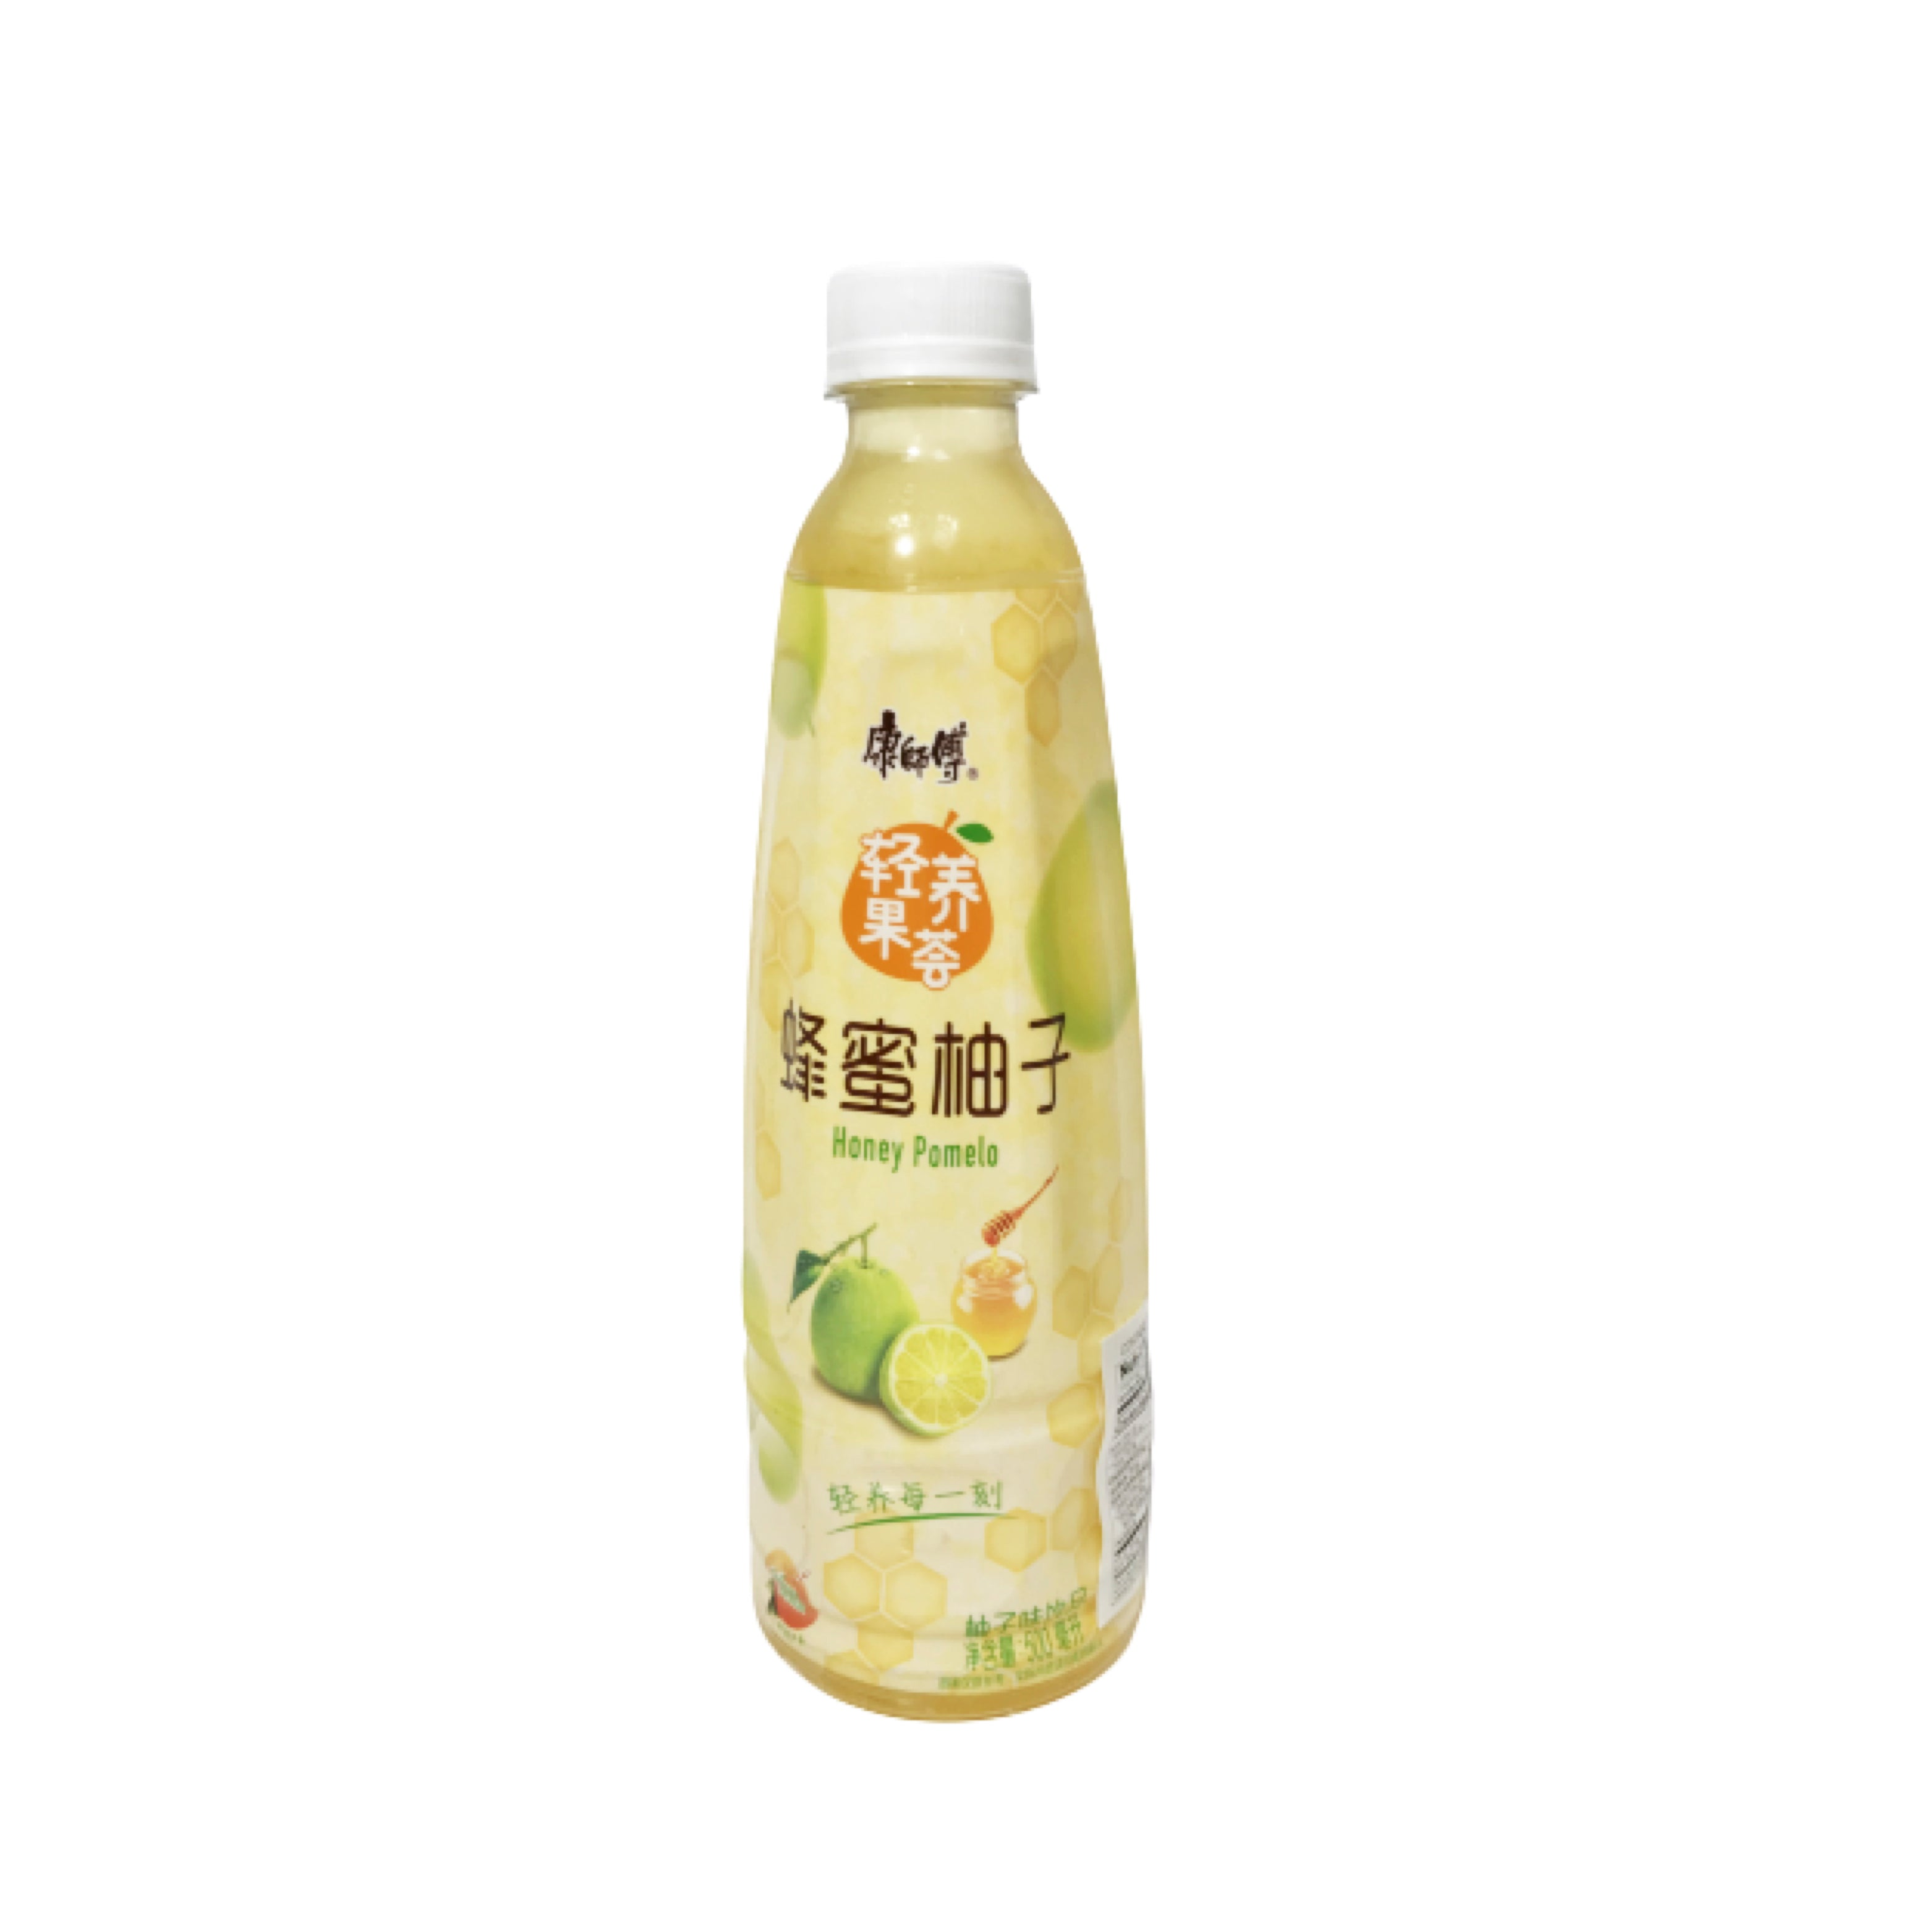 Kang Shi Fu Honey Pomelo 康師傅蜂蜜柚子